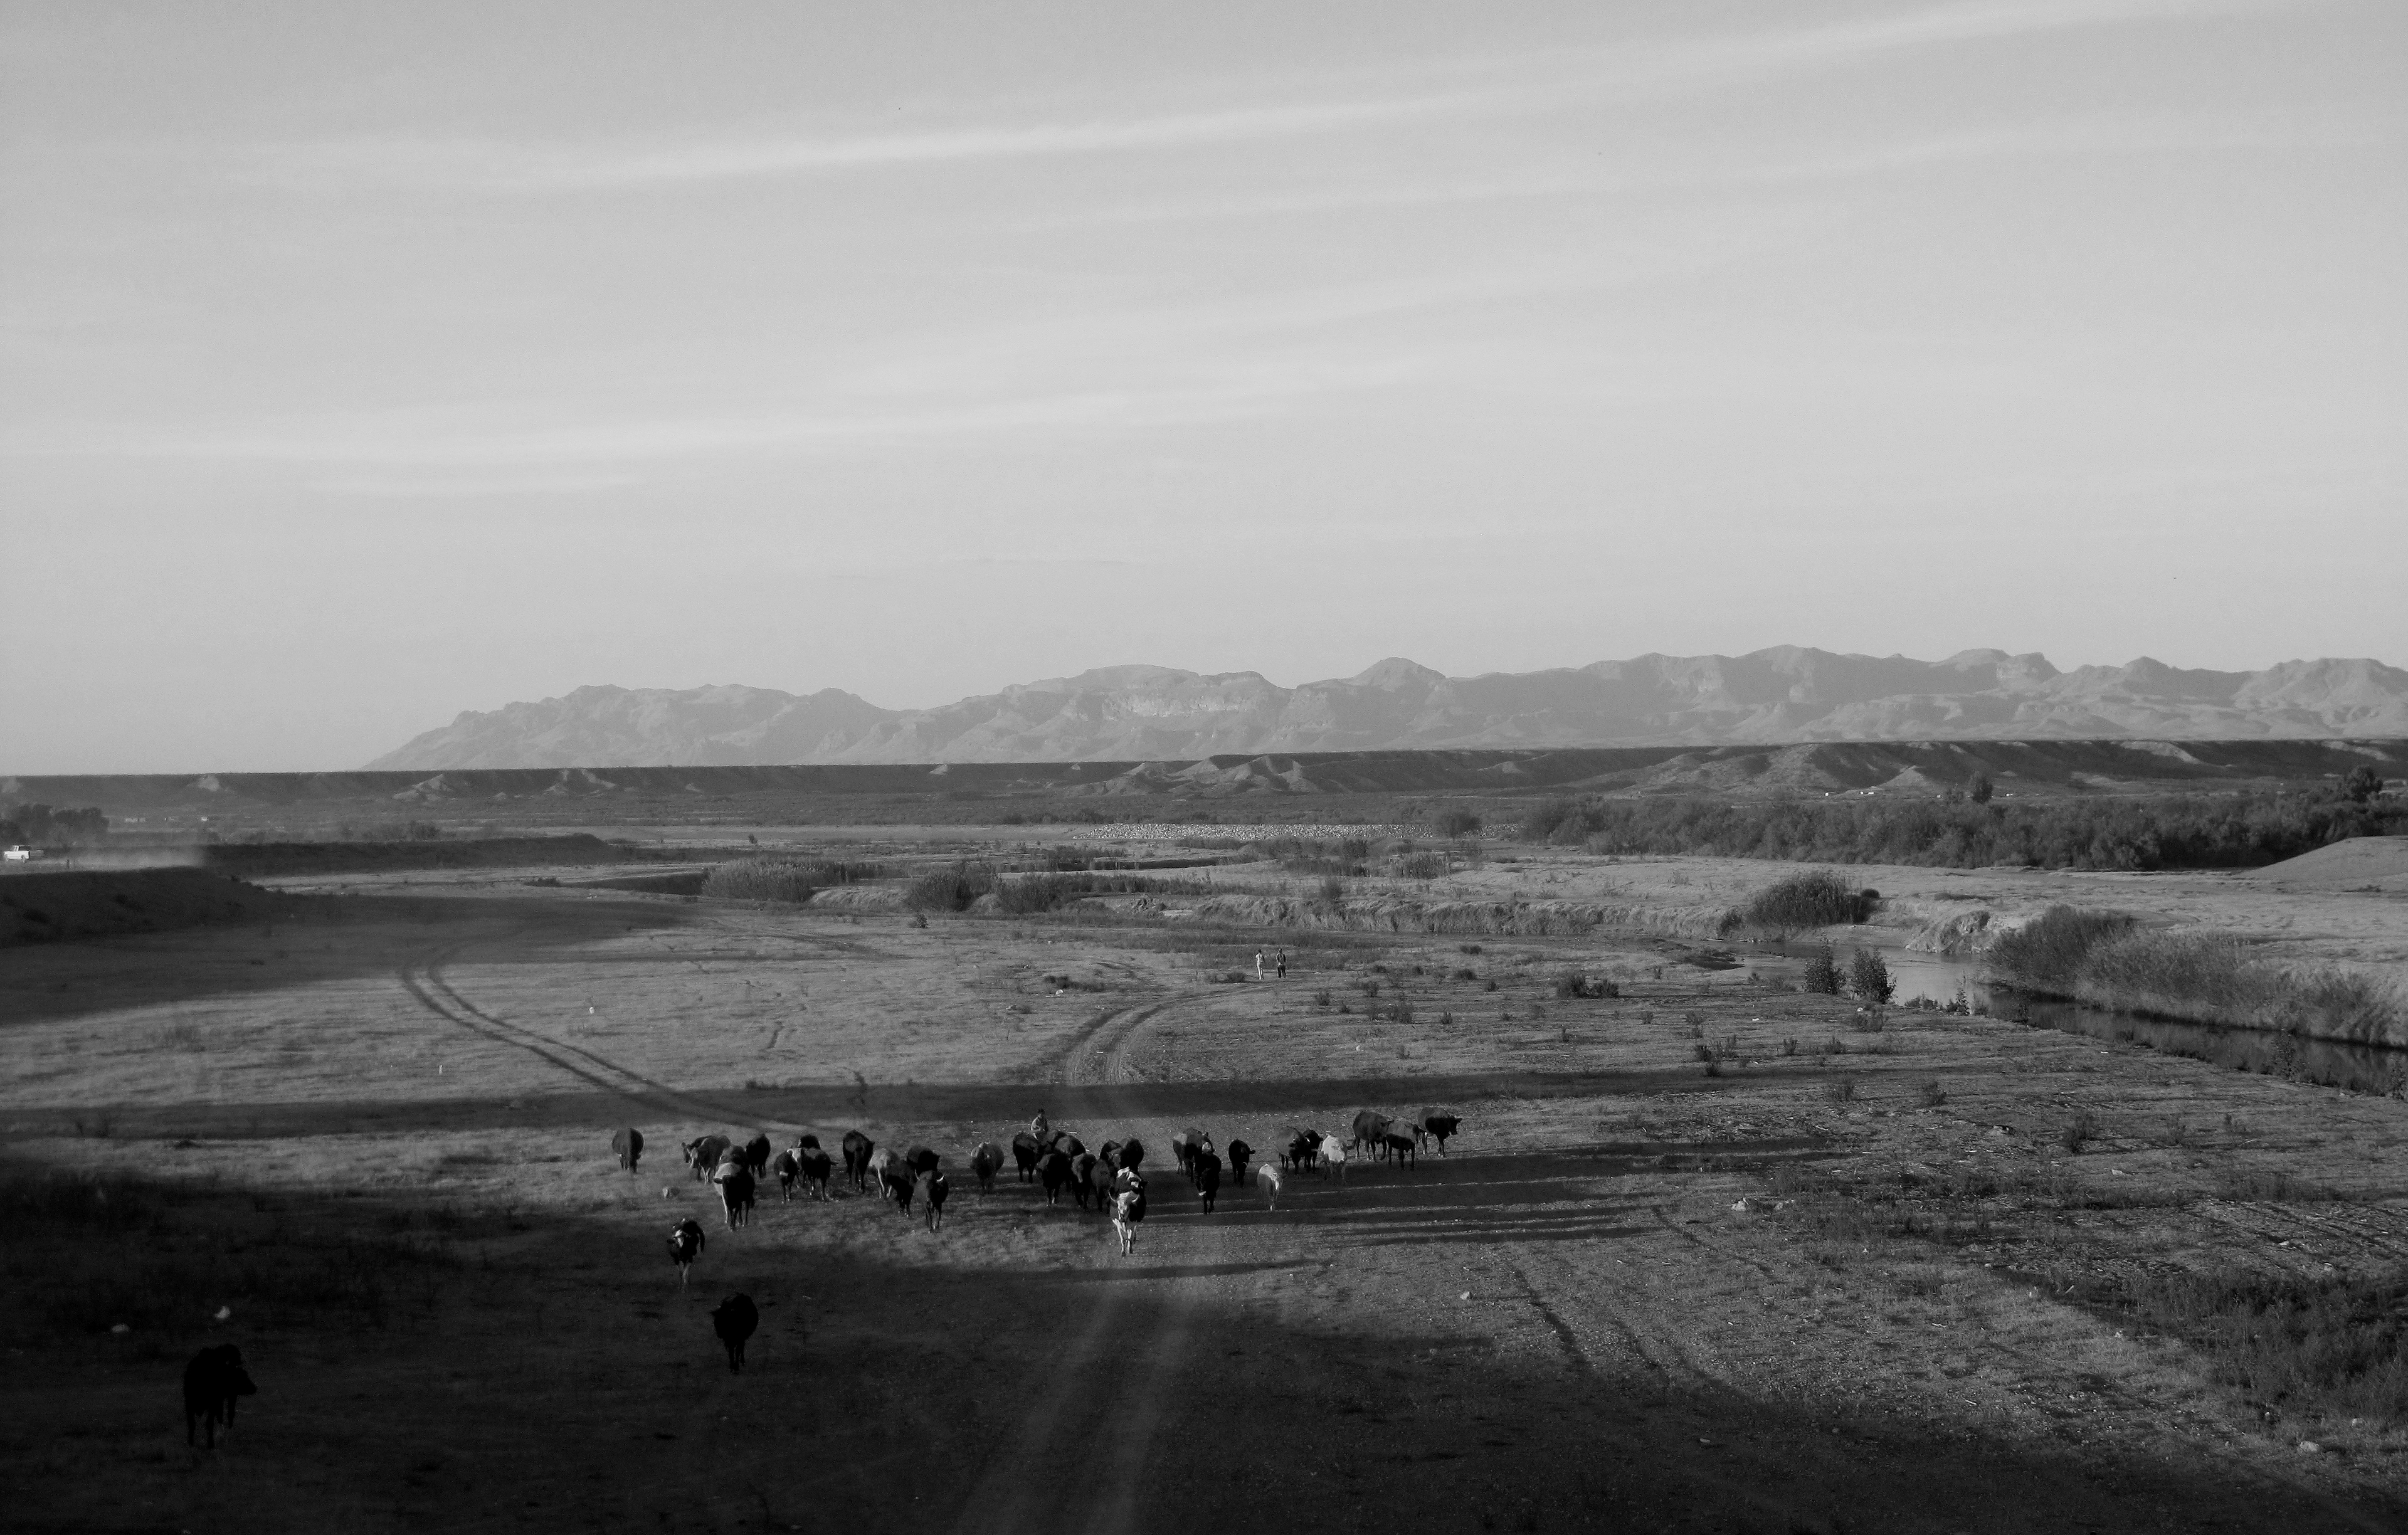 A herd of cows moving across a desert landscape